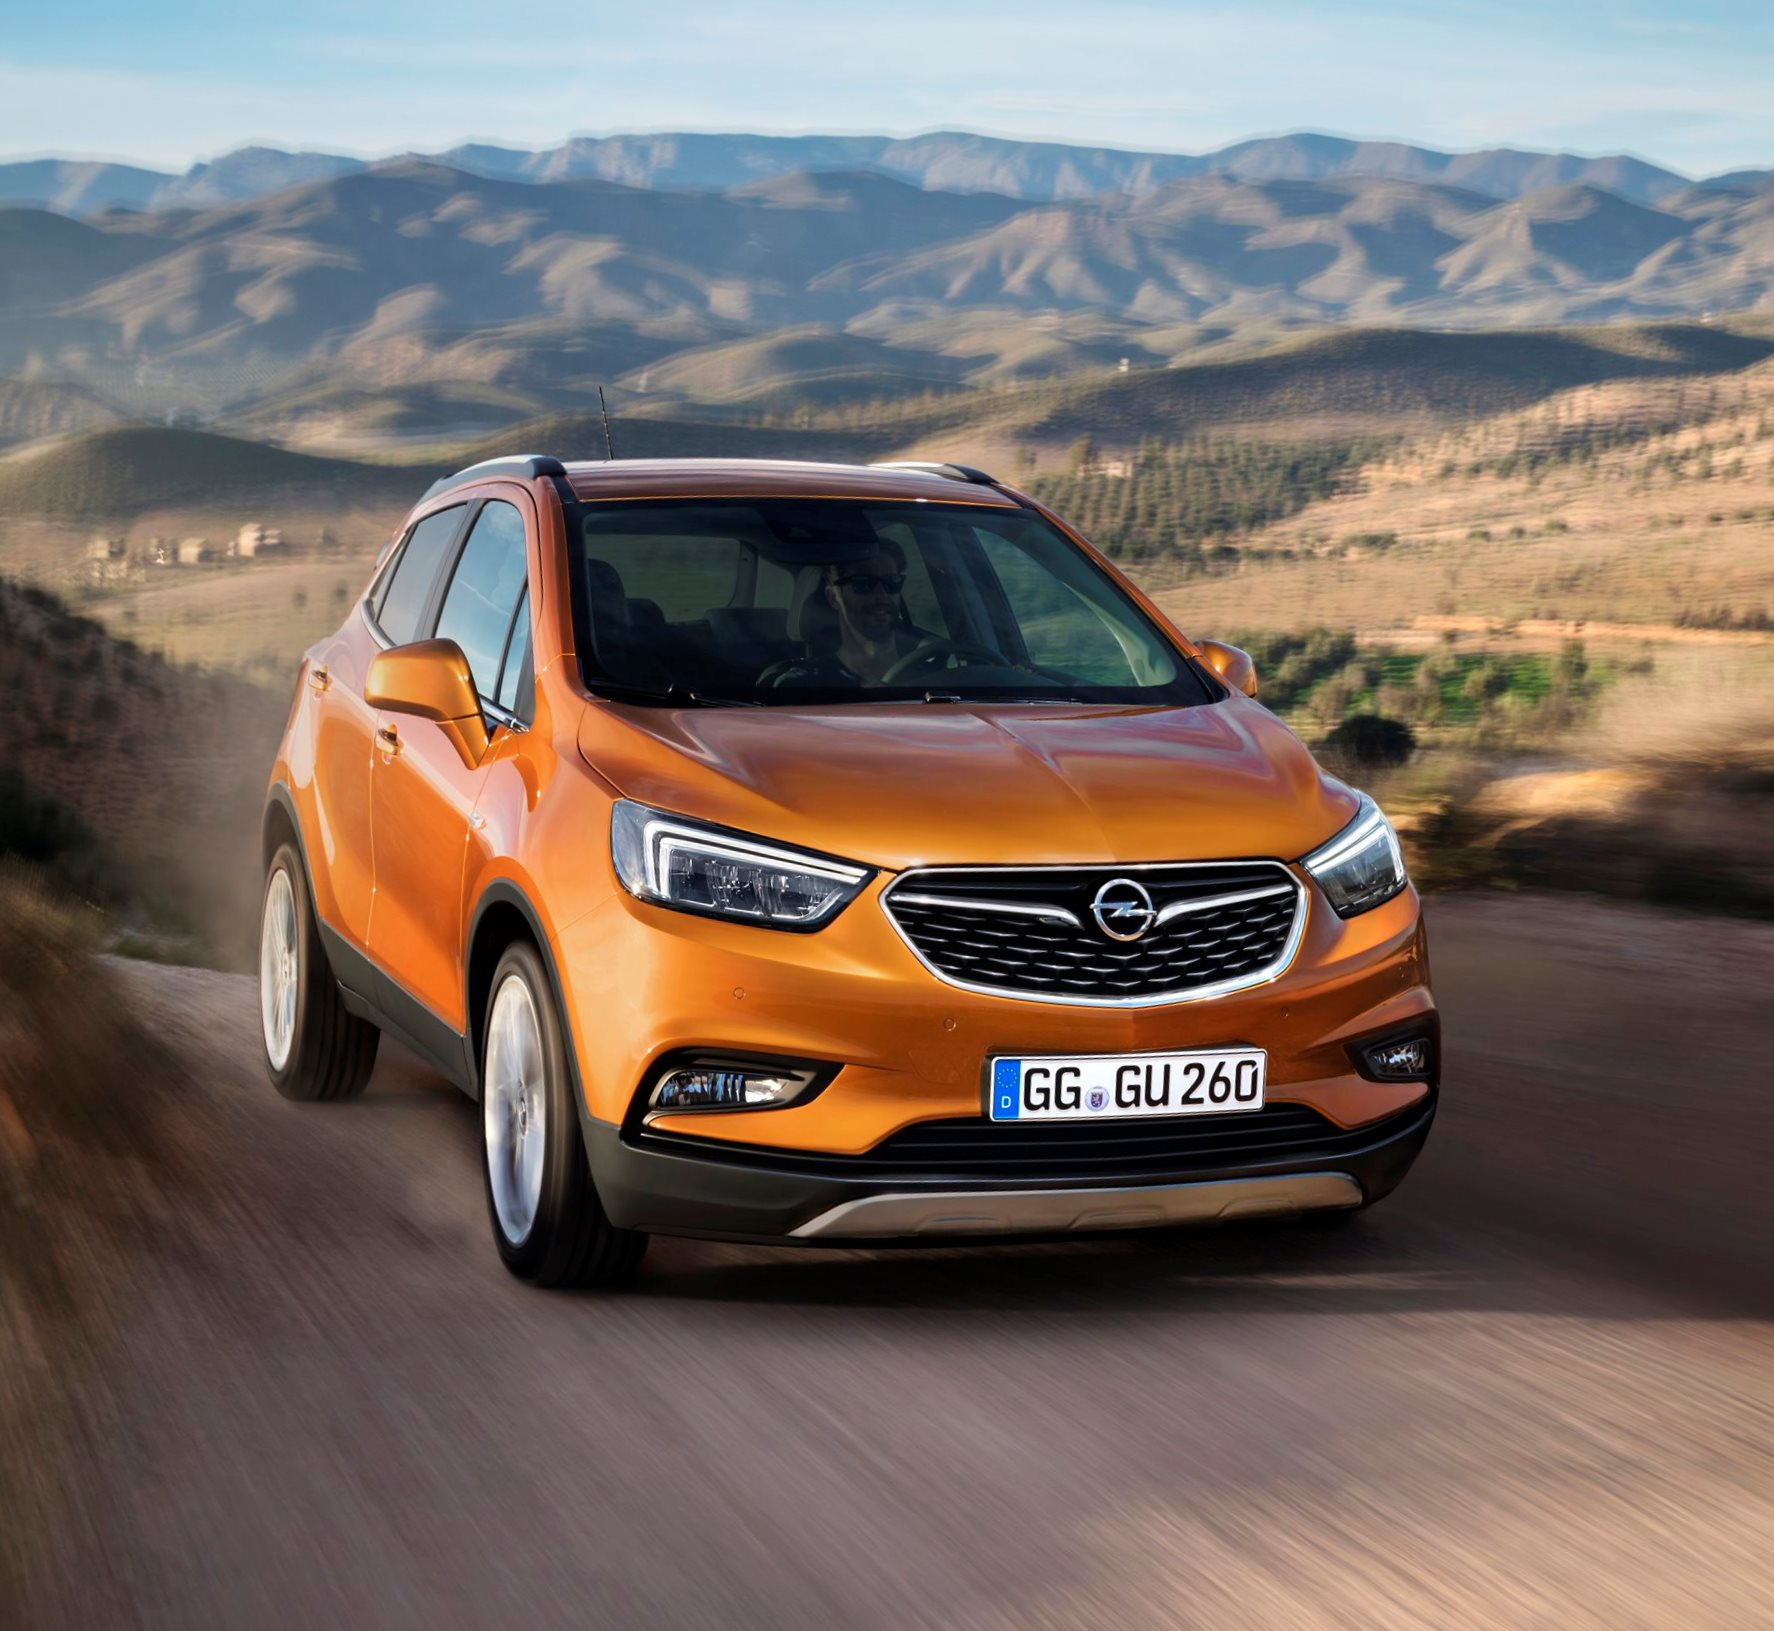 opel mokka 2016 2016 opel mokka x info pictures specs wiki gm authority 2016 opel mokka review. Black Bedroom Furniture Sets. Home Design Ideas